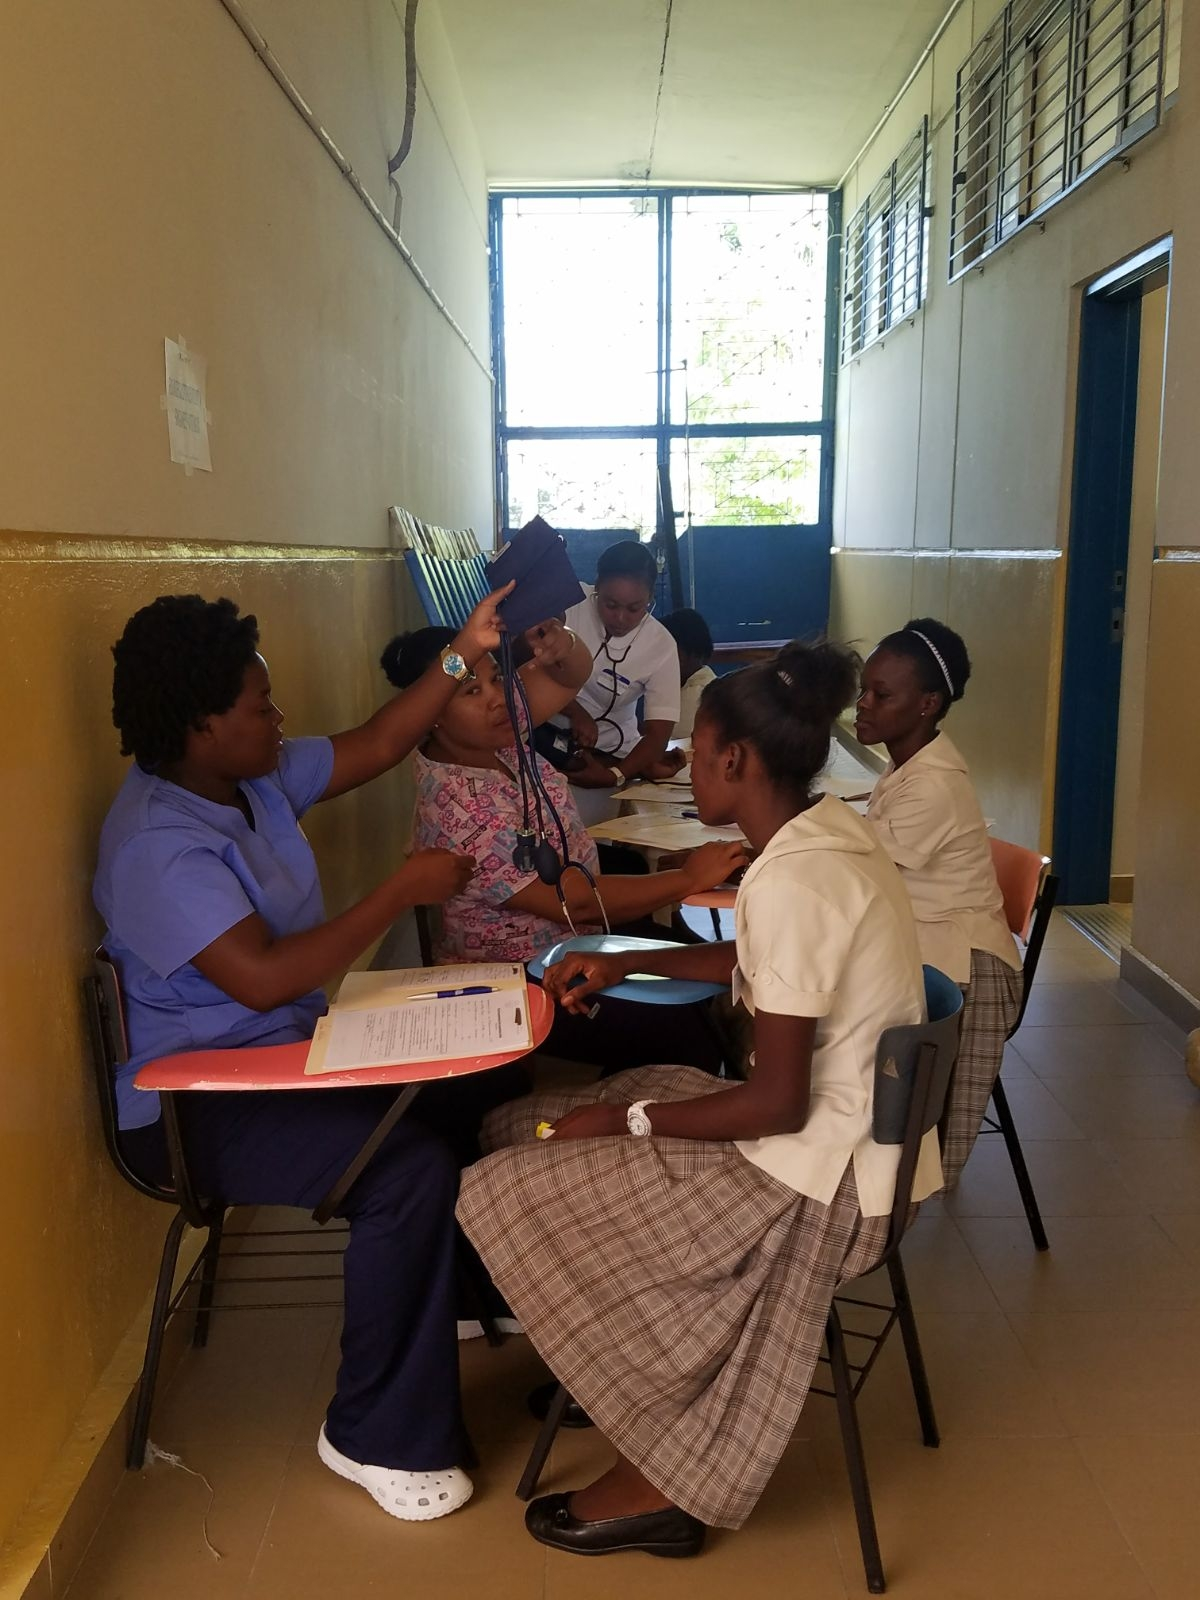 Health assessments are conducted at FSIL